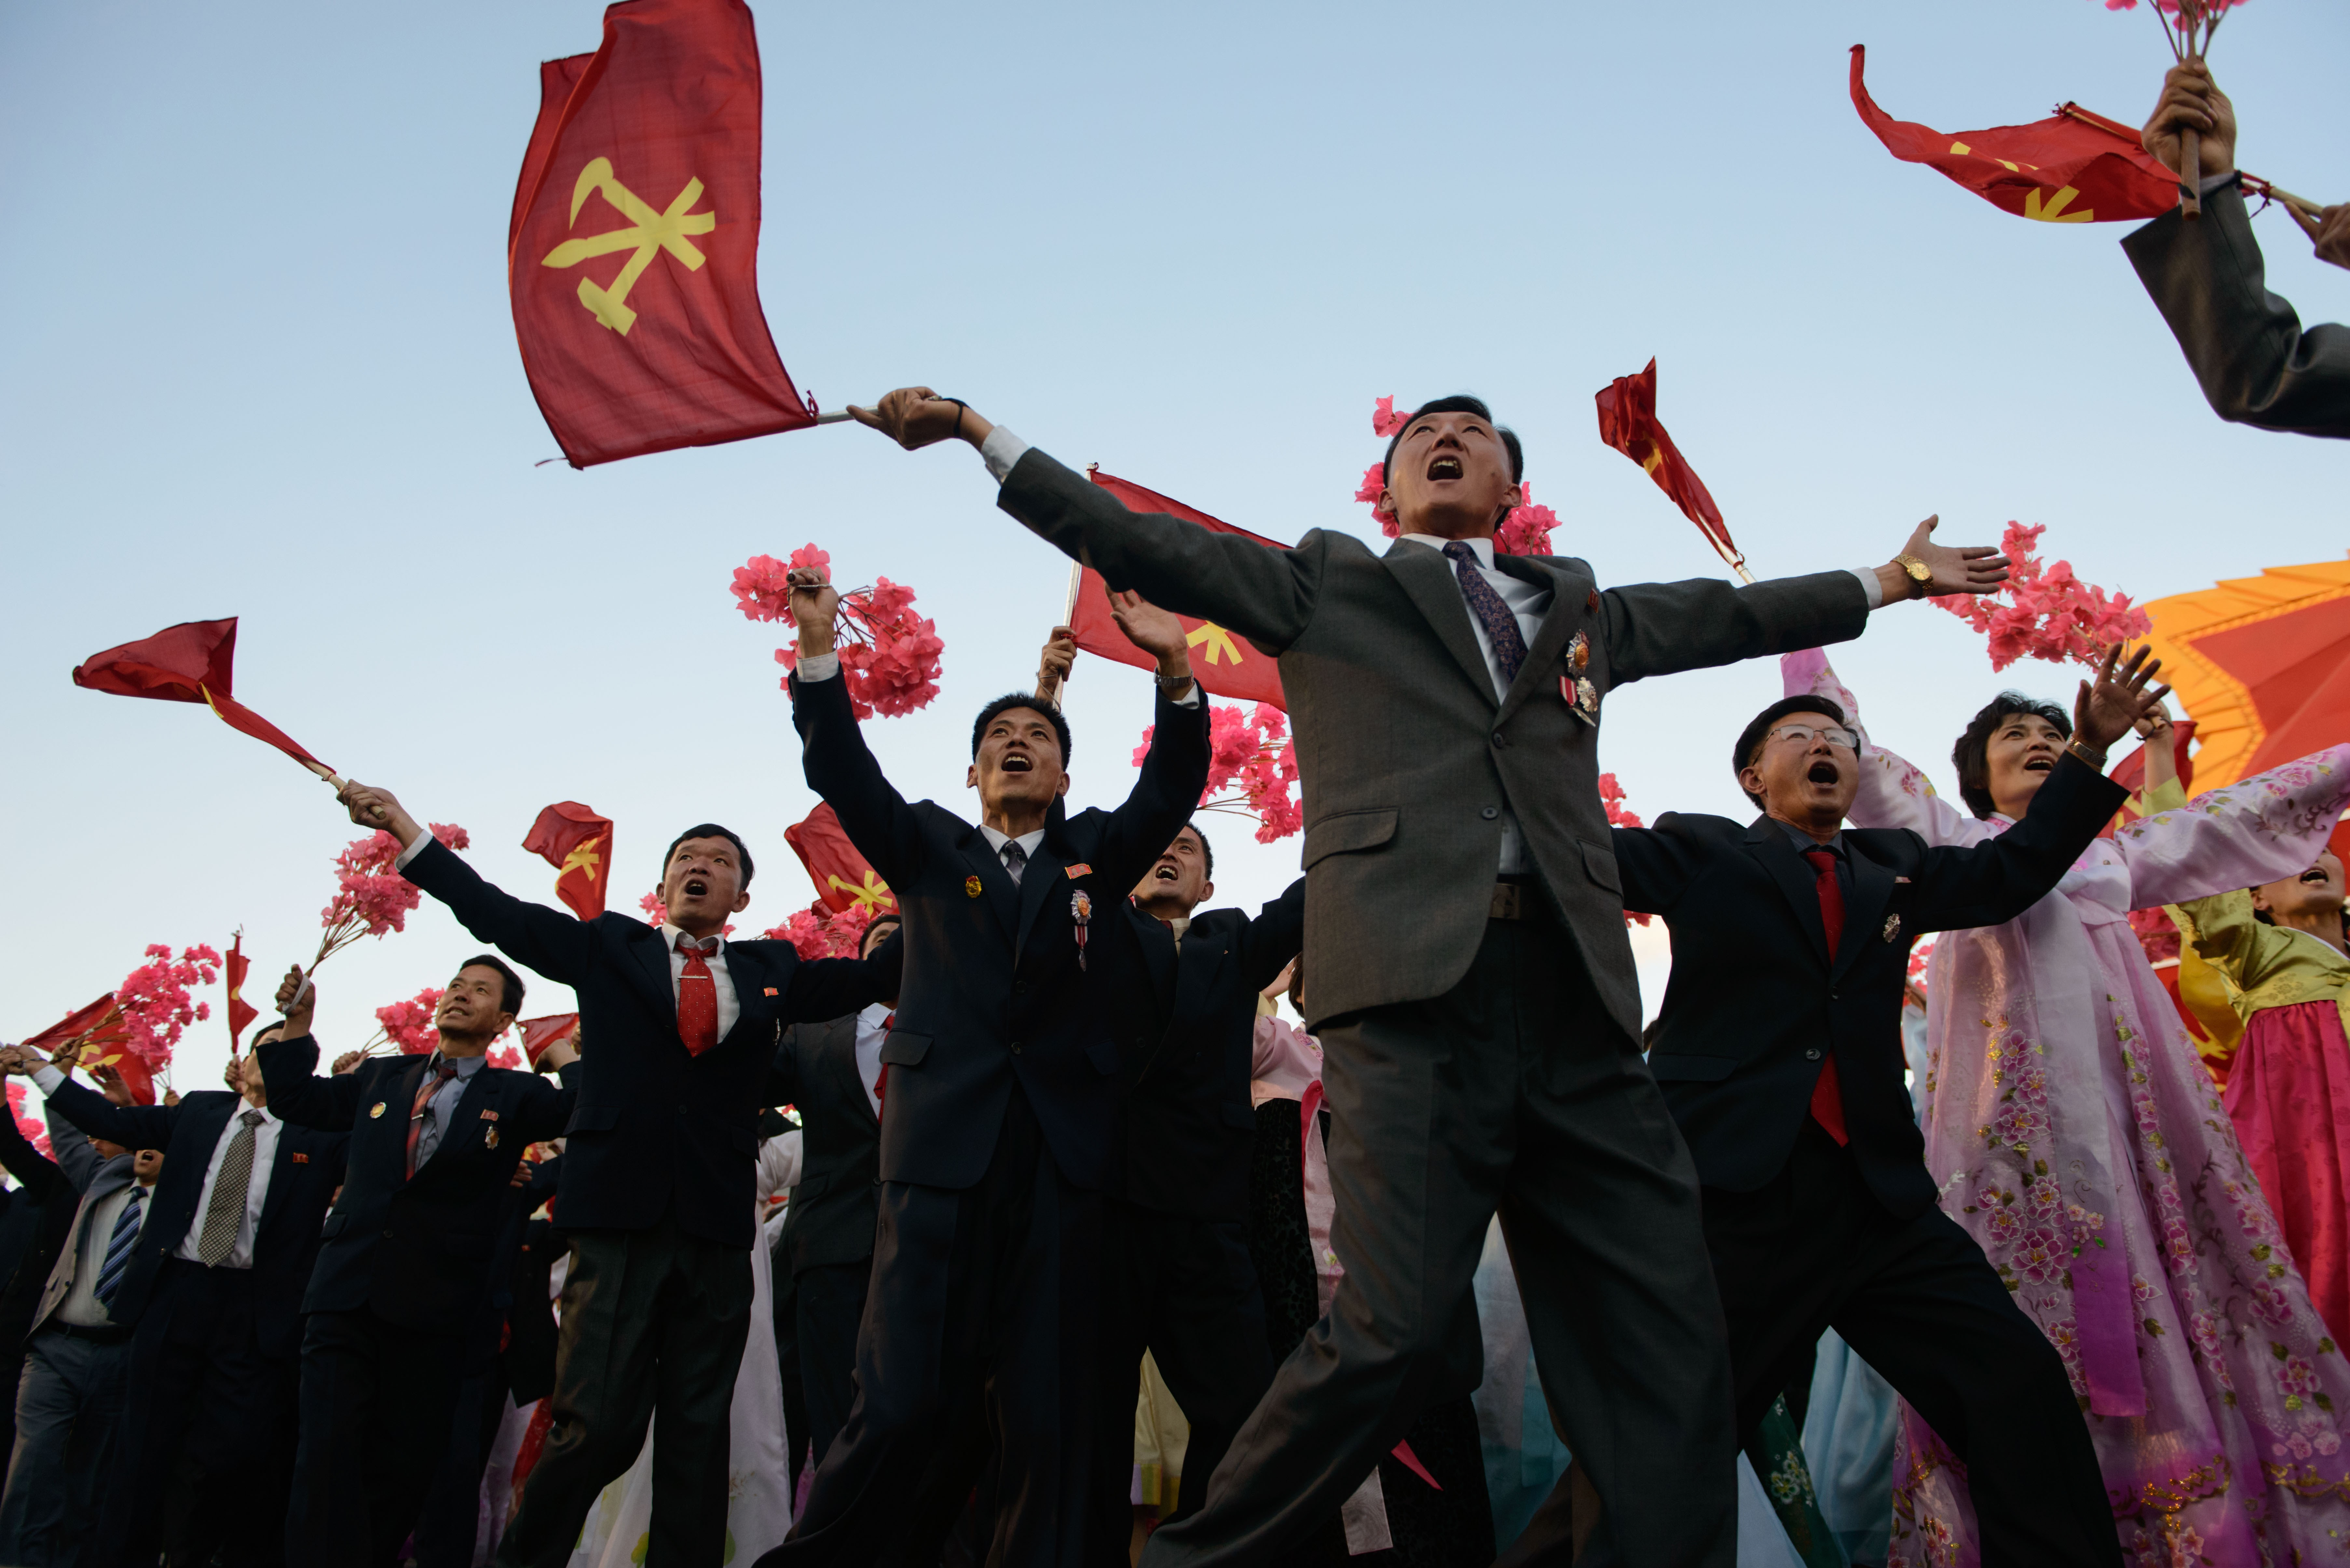 Participants wave flowers towards North Korean leader Kim Jong-Un (not pictured) as they pass through Kim Il-Sung square during a mass military parade in Pyongyang on Oct. 10, 2015.